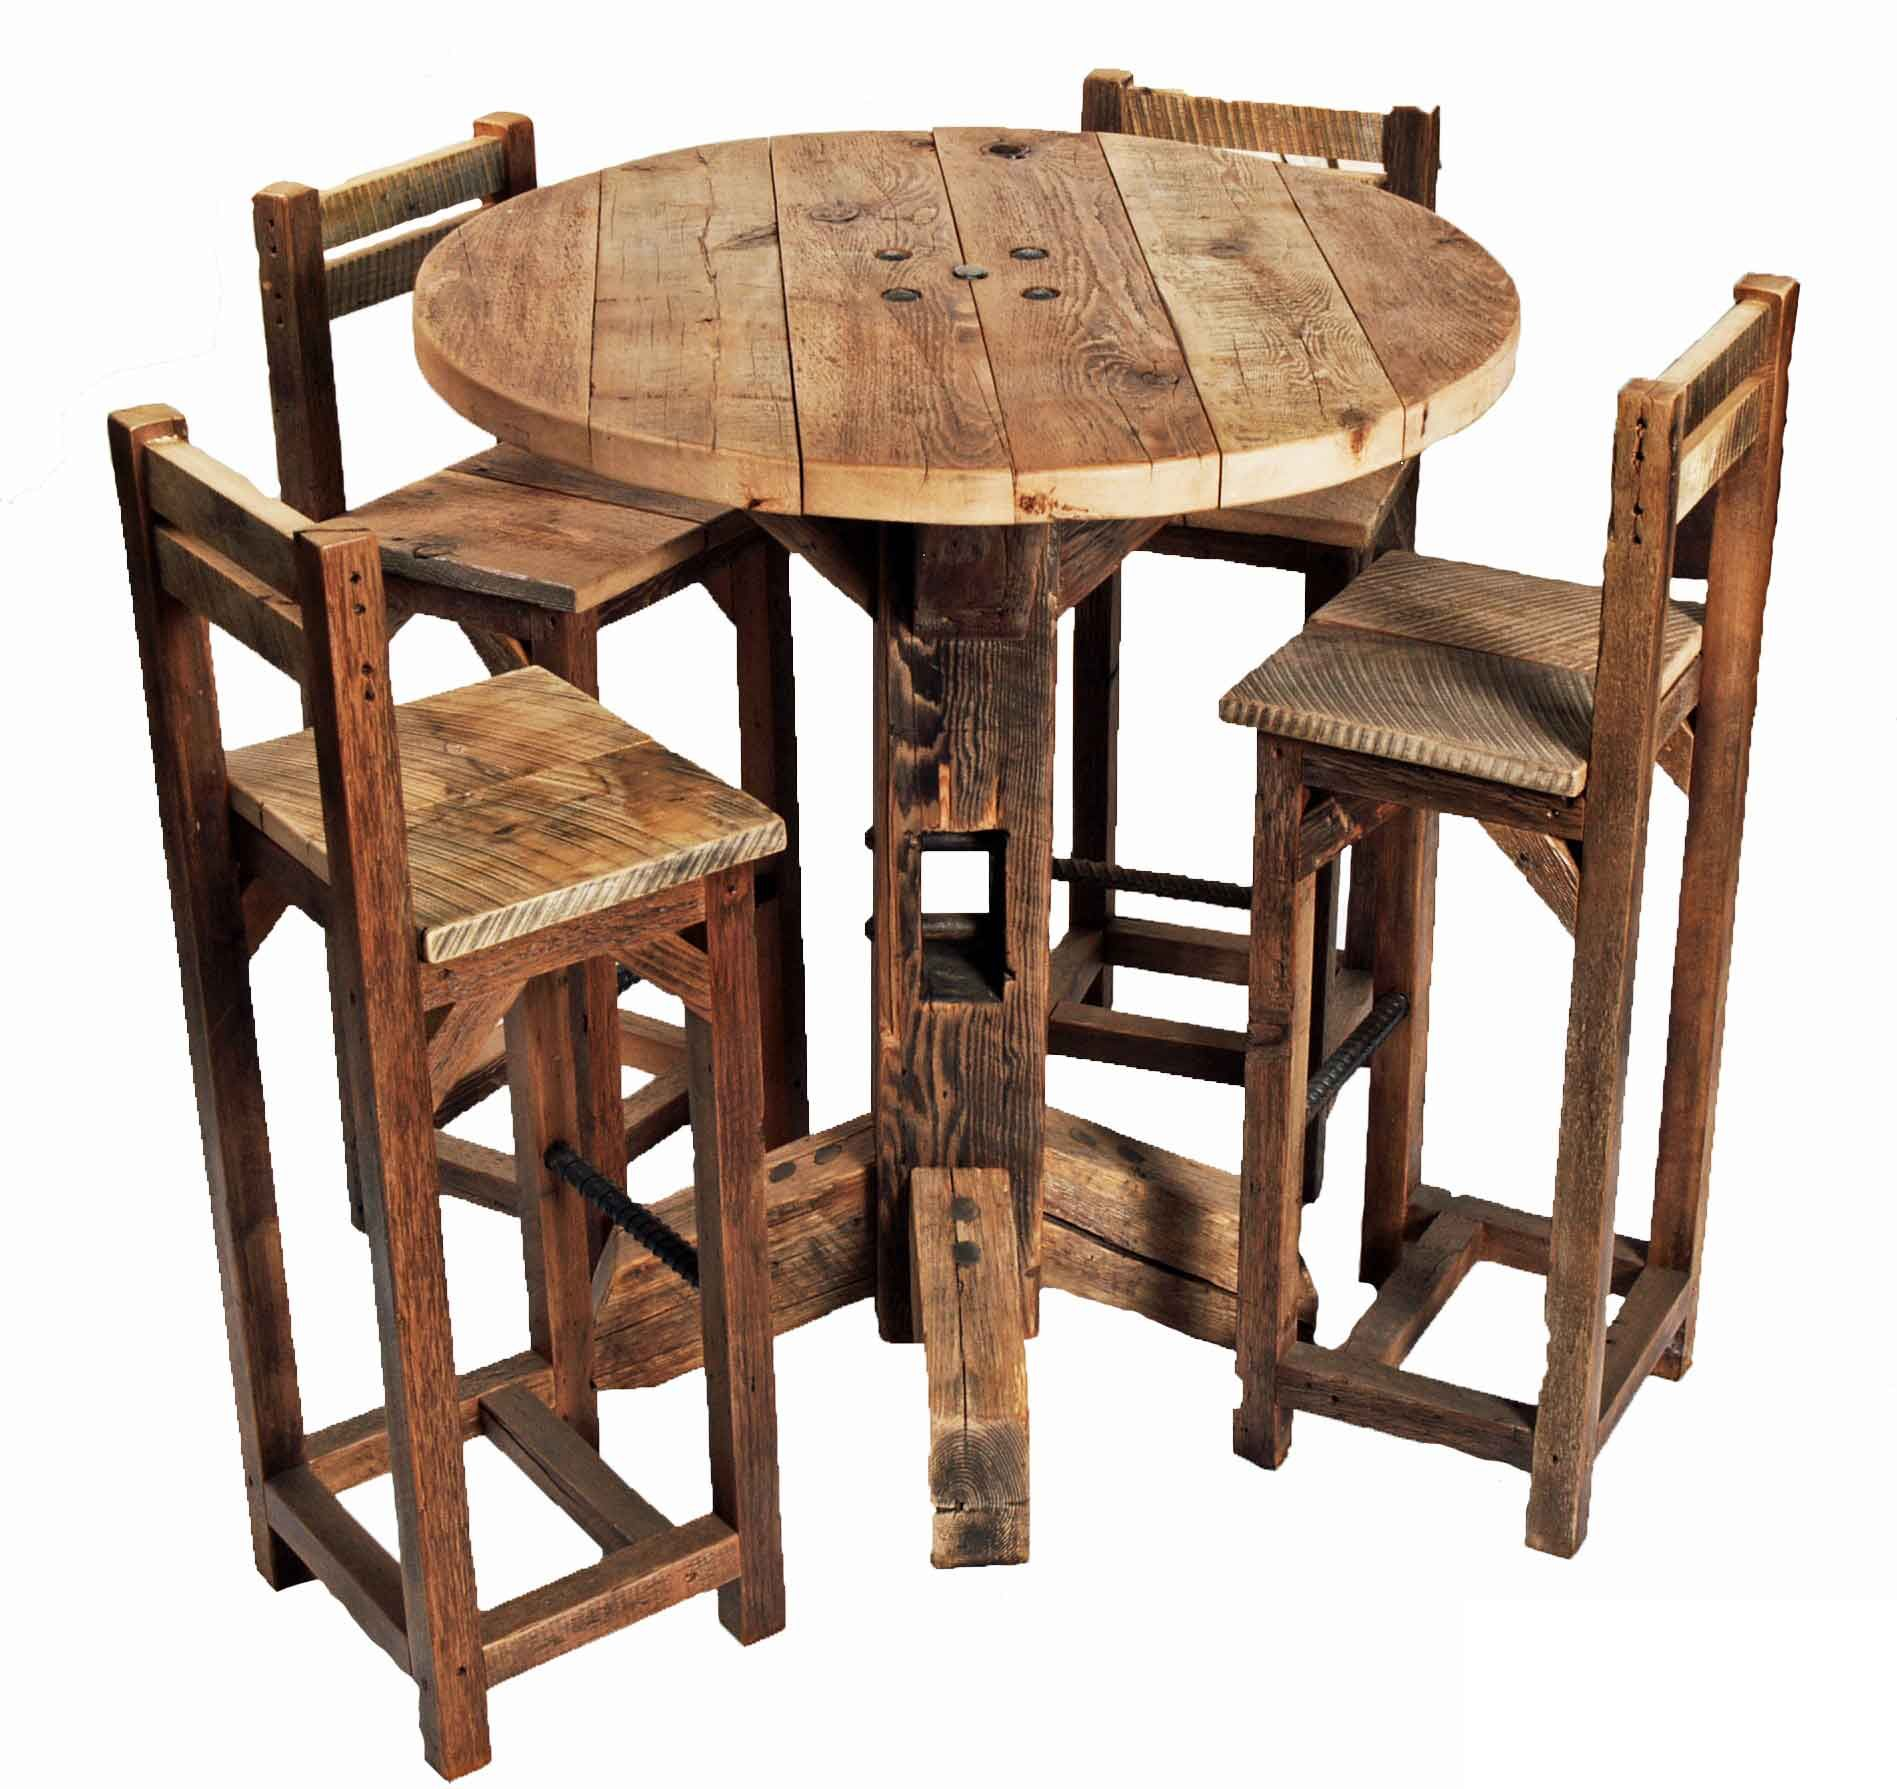 furniture old rustic small high round top kitchen table and chair with high legs and - Kitchen Bar Table Set